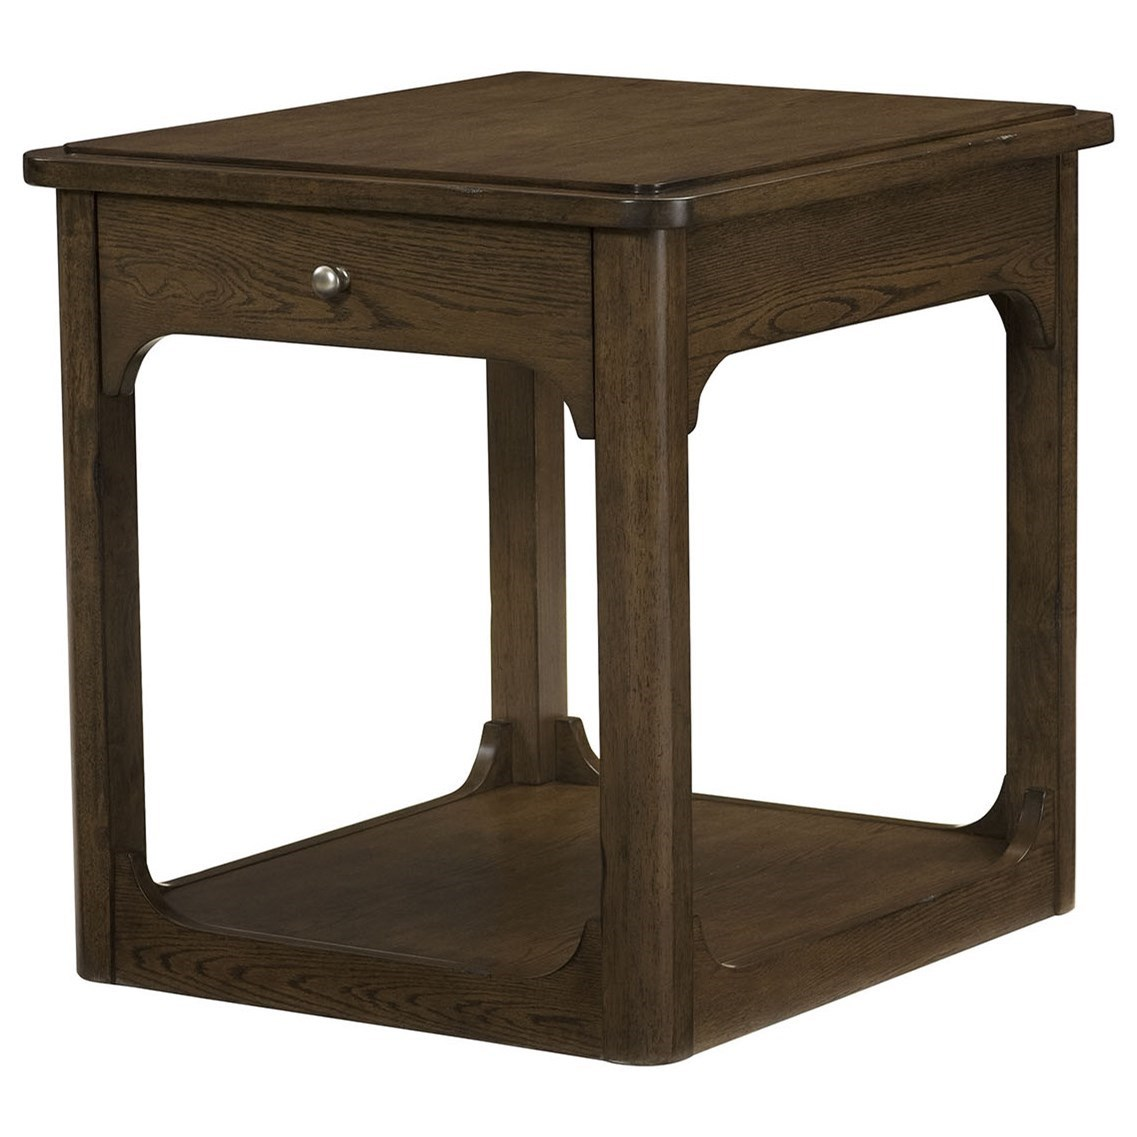 Hammary Facet Rectangular Drawer End Table - Item Number: 438-915